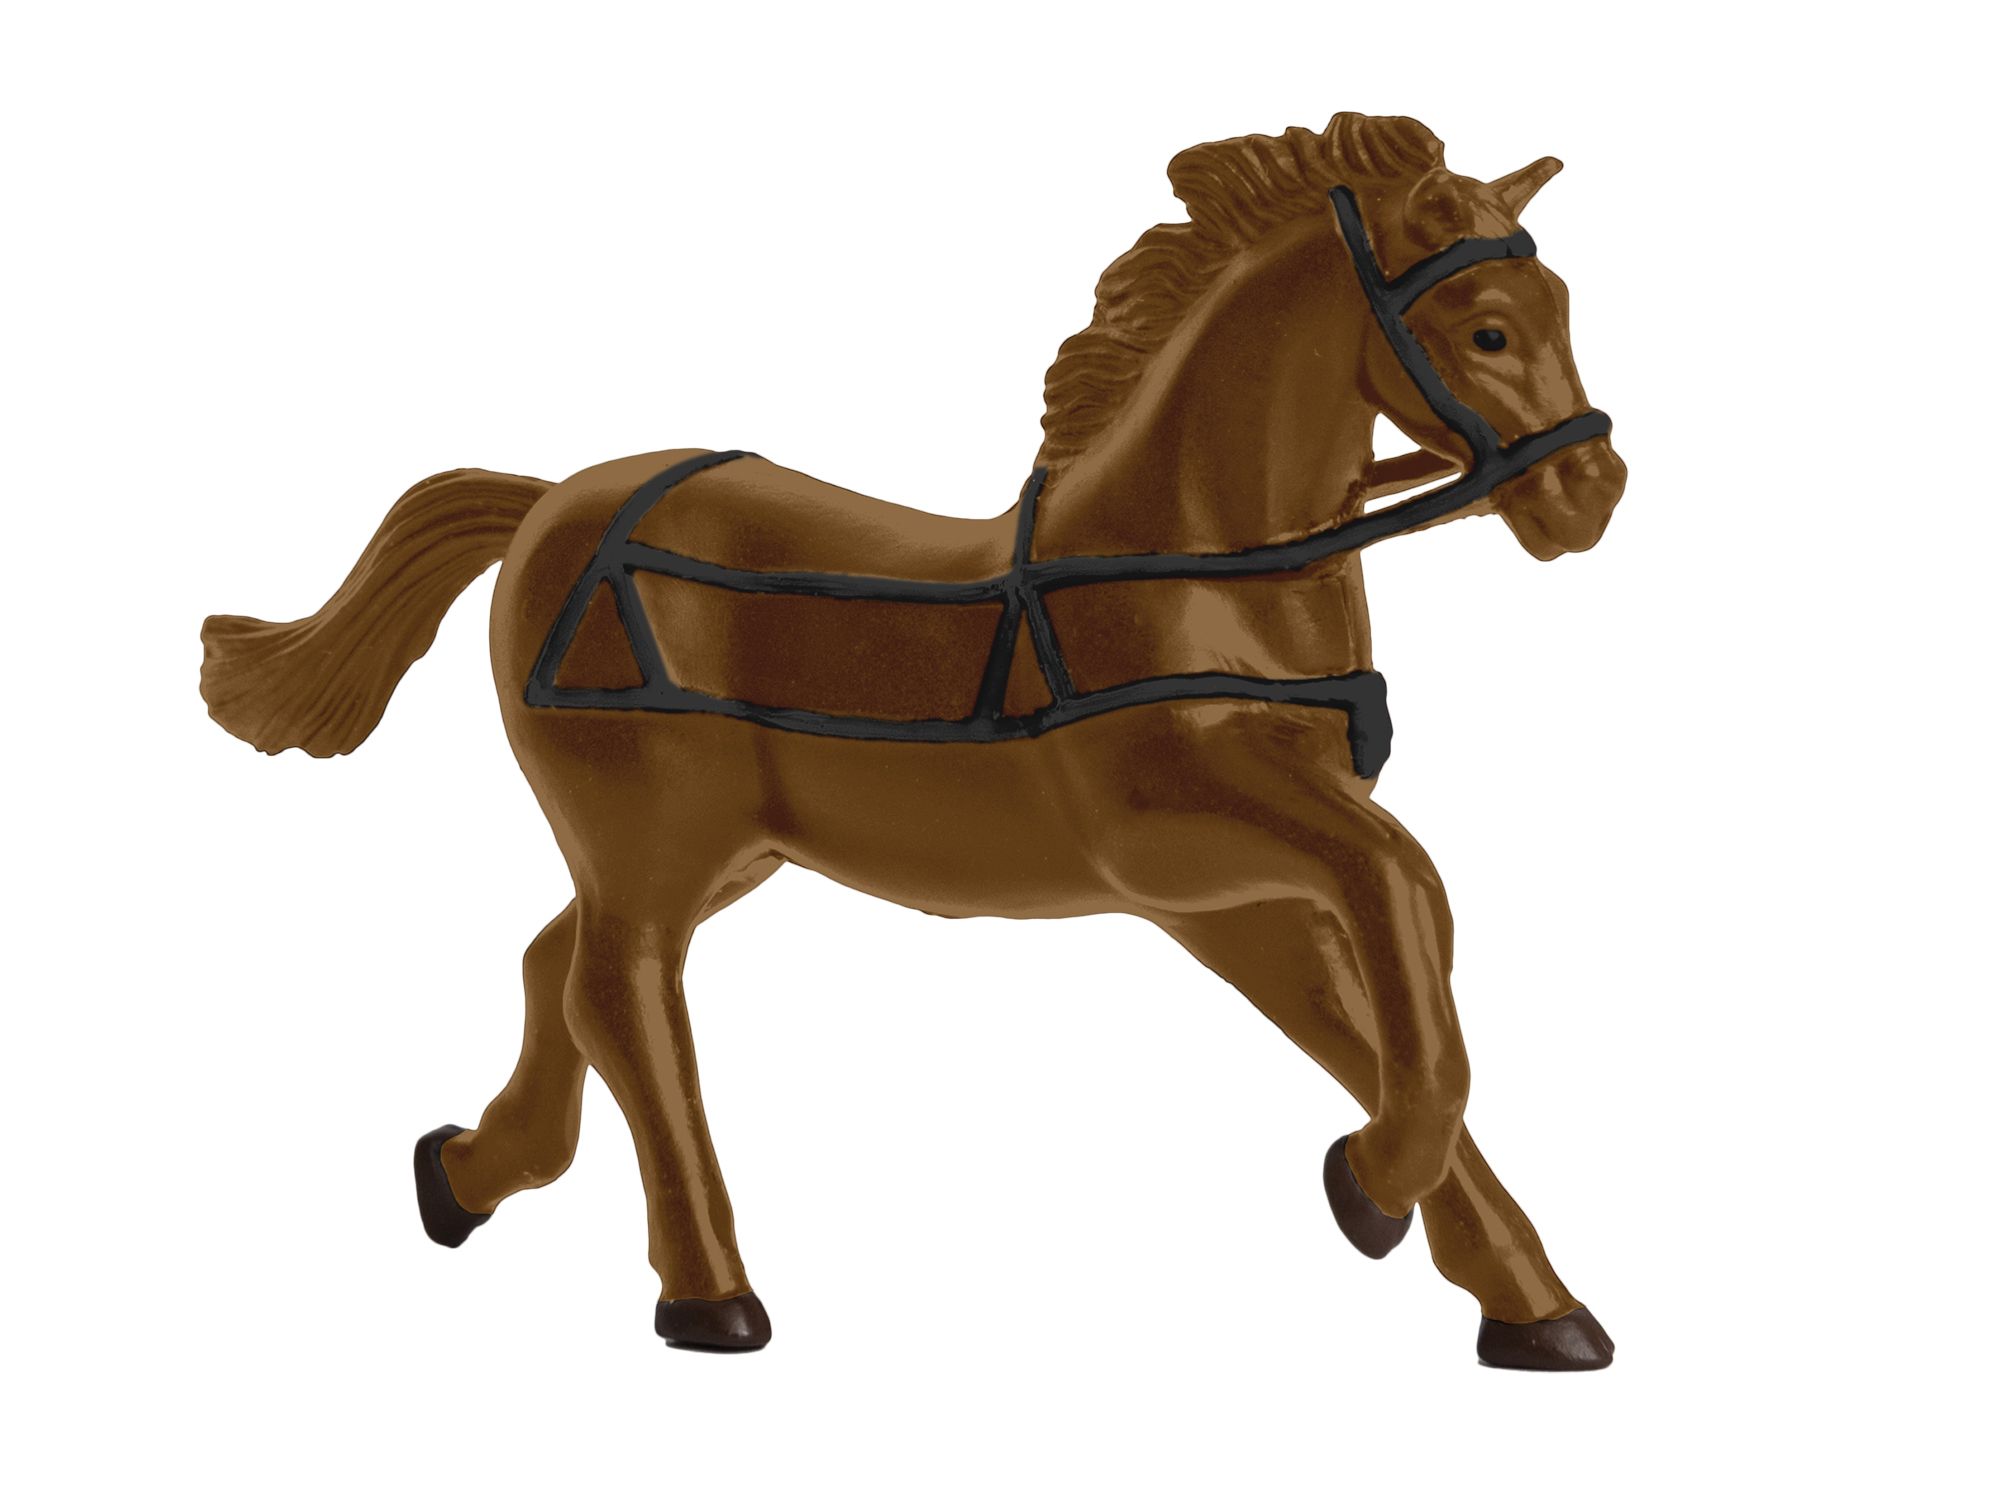 Lionel 1930280 O Horses 4-Pack